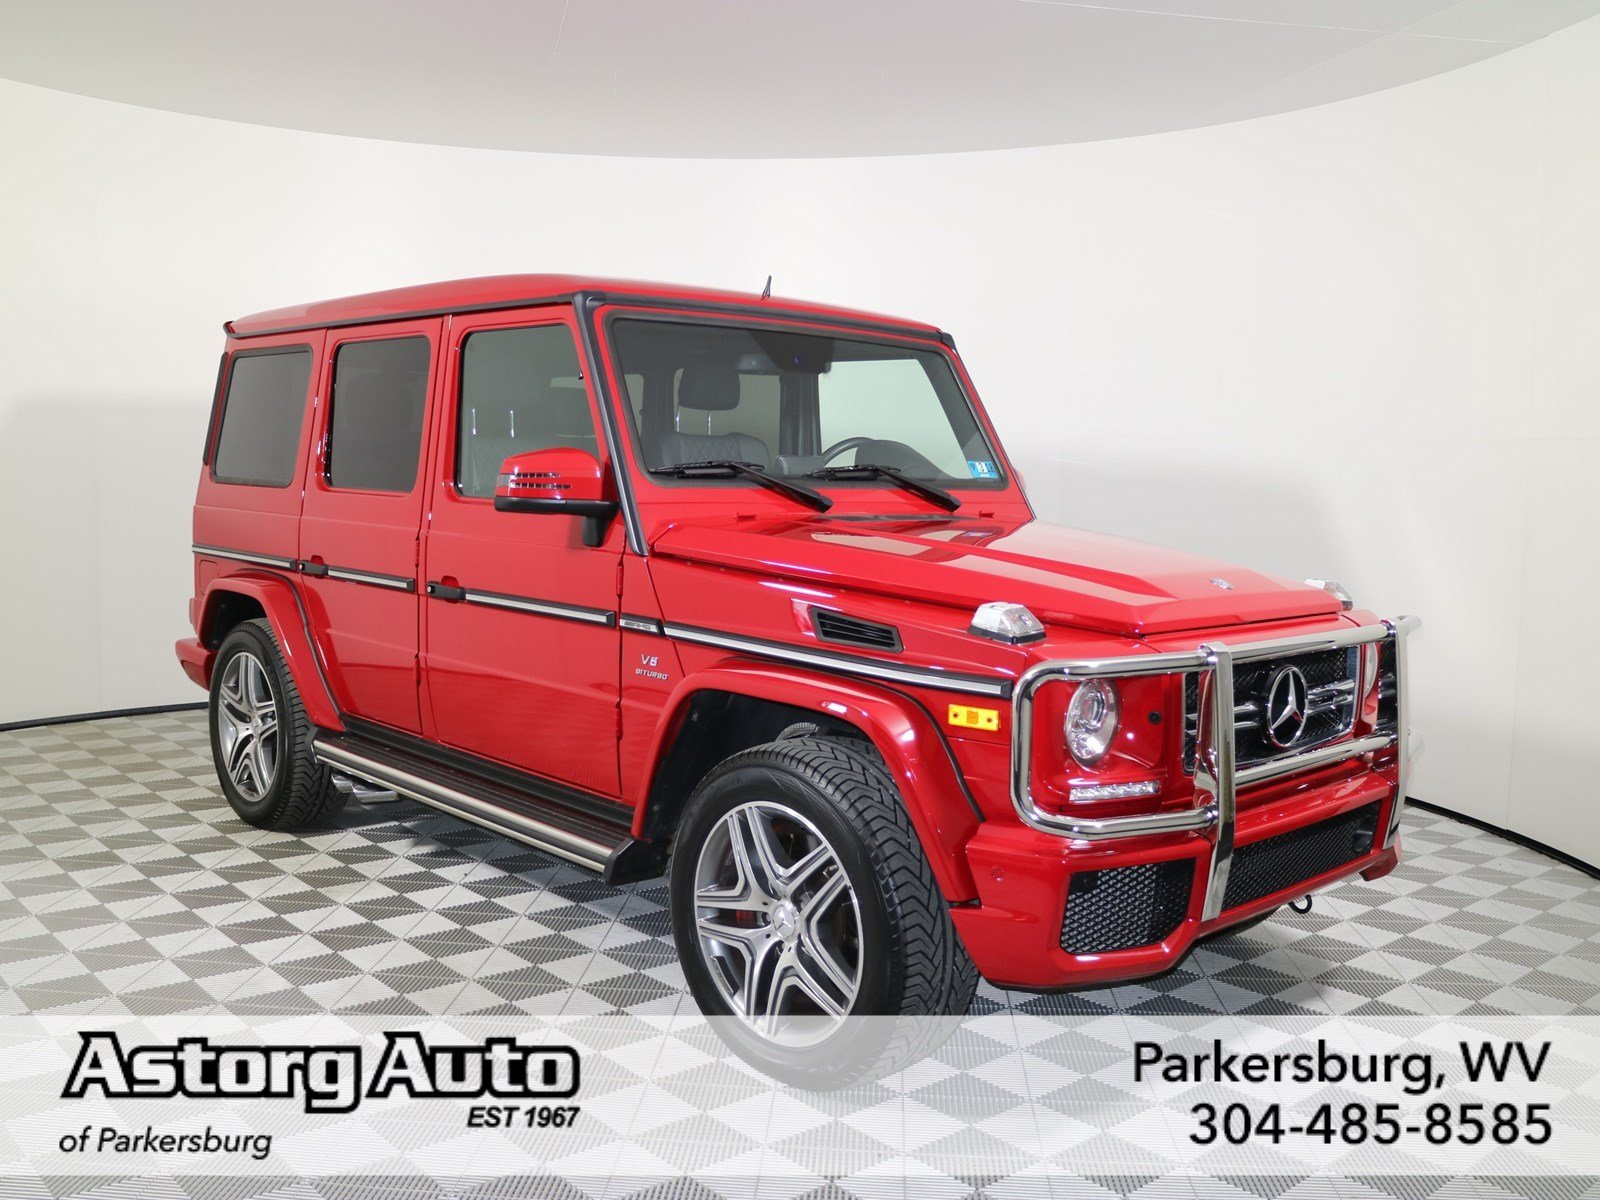 certified pre owned 2015 mercedes benz g class g 63 amg suv suv in parkersburg um1410 astorg. Black Bedroom Furniture Sets. Home Design Ideas